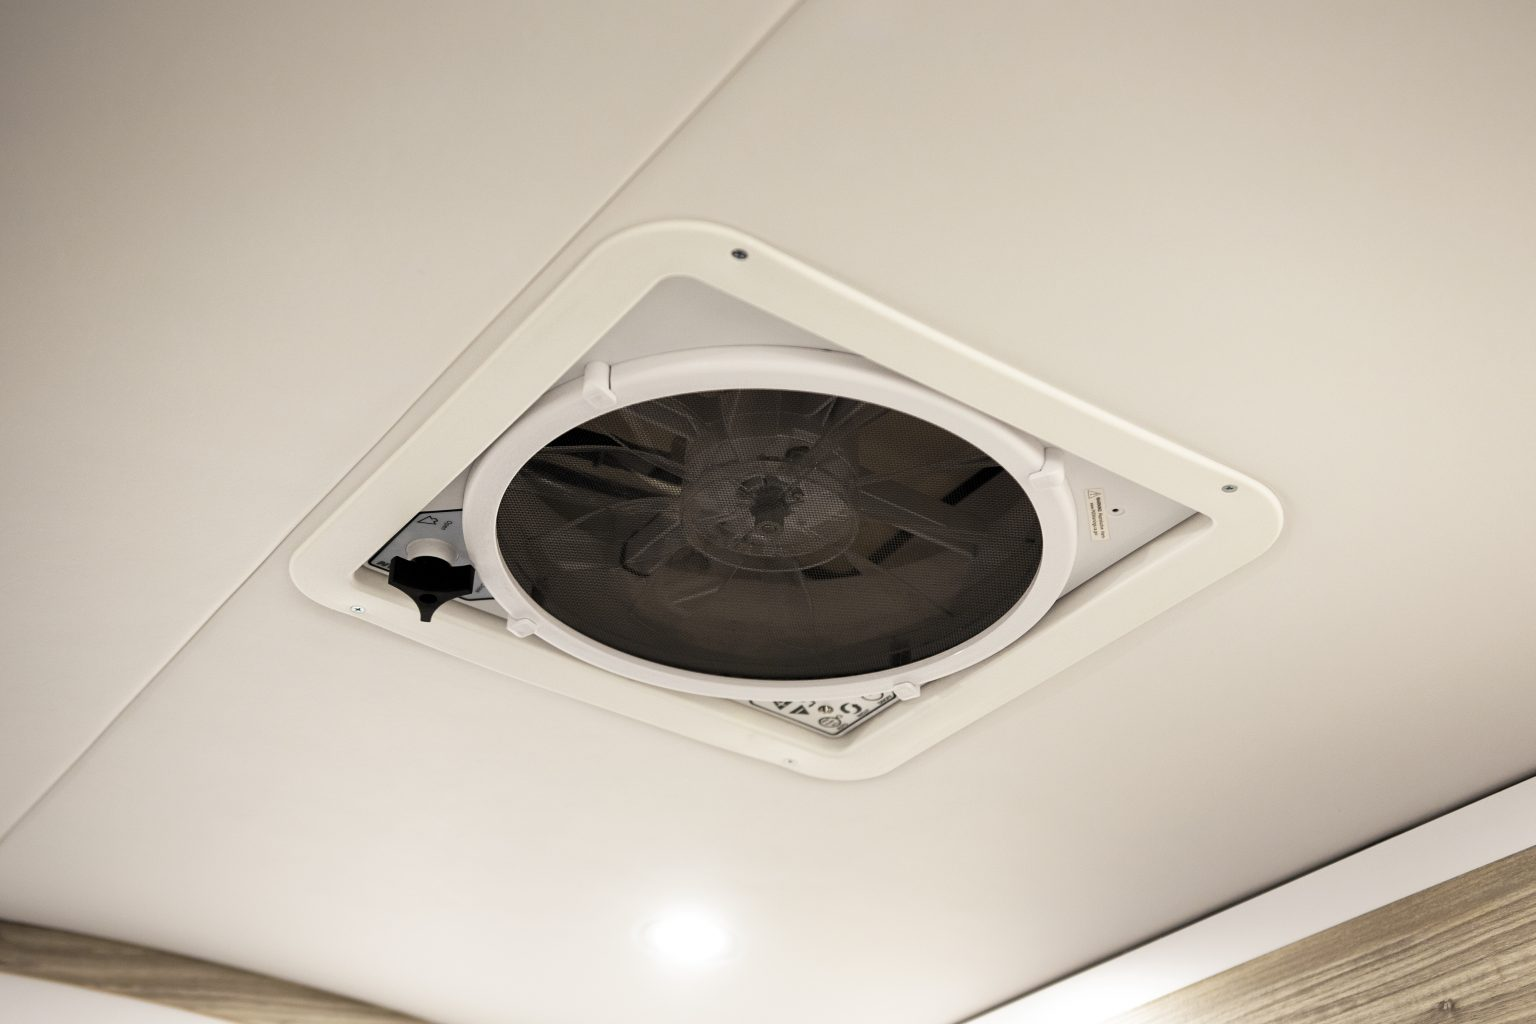 maxx air fan3